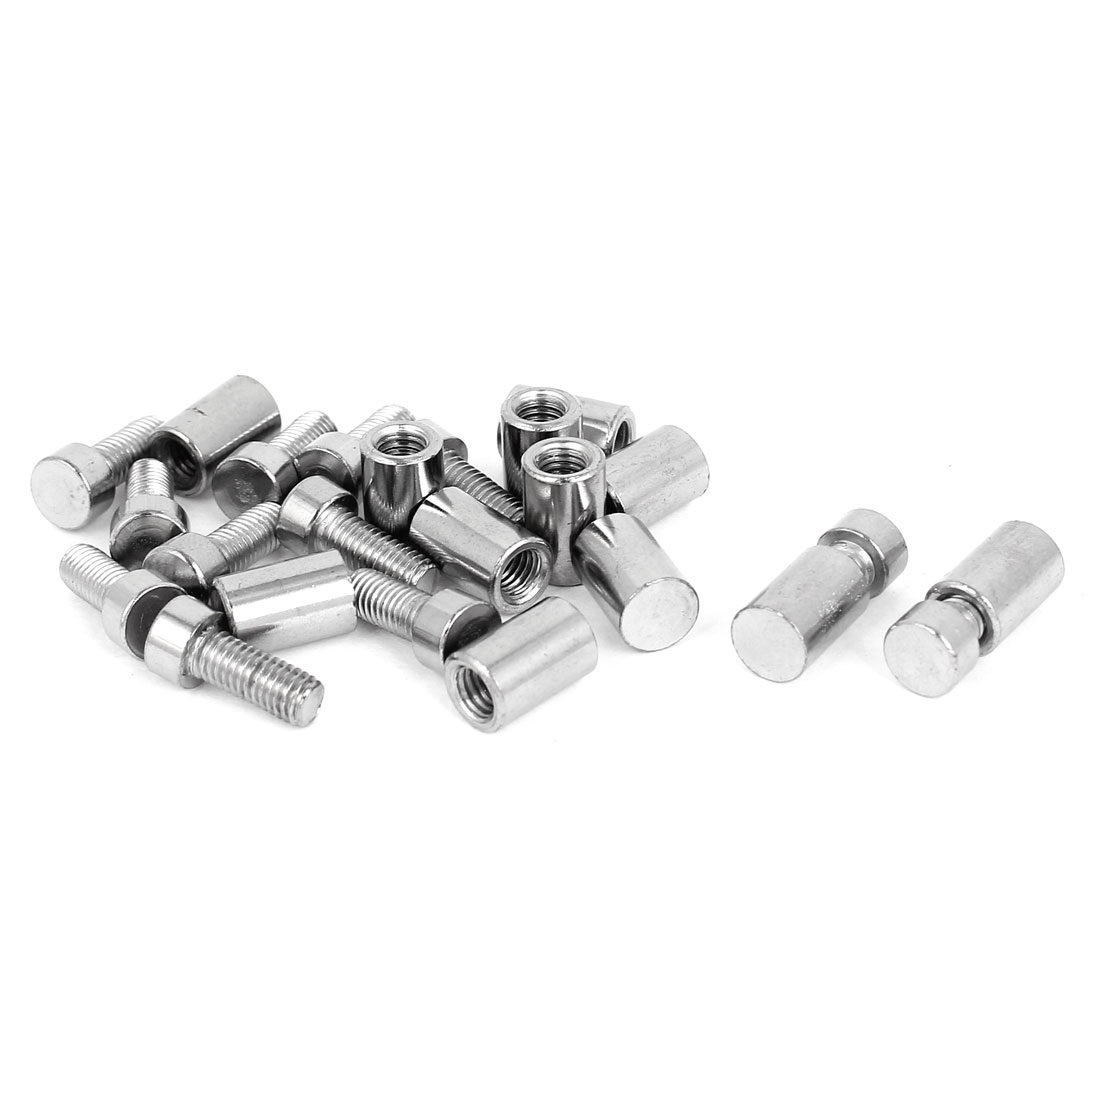 Picture Poster Stainless Steel Standoff Pins Screw Glass Frame Hanger 12 Pcs